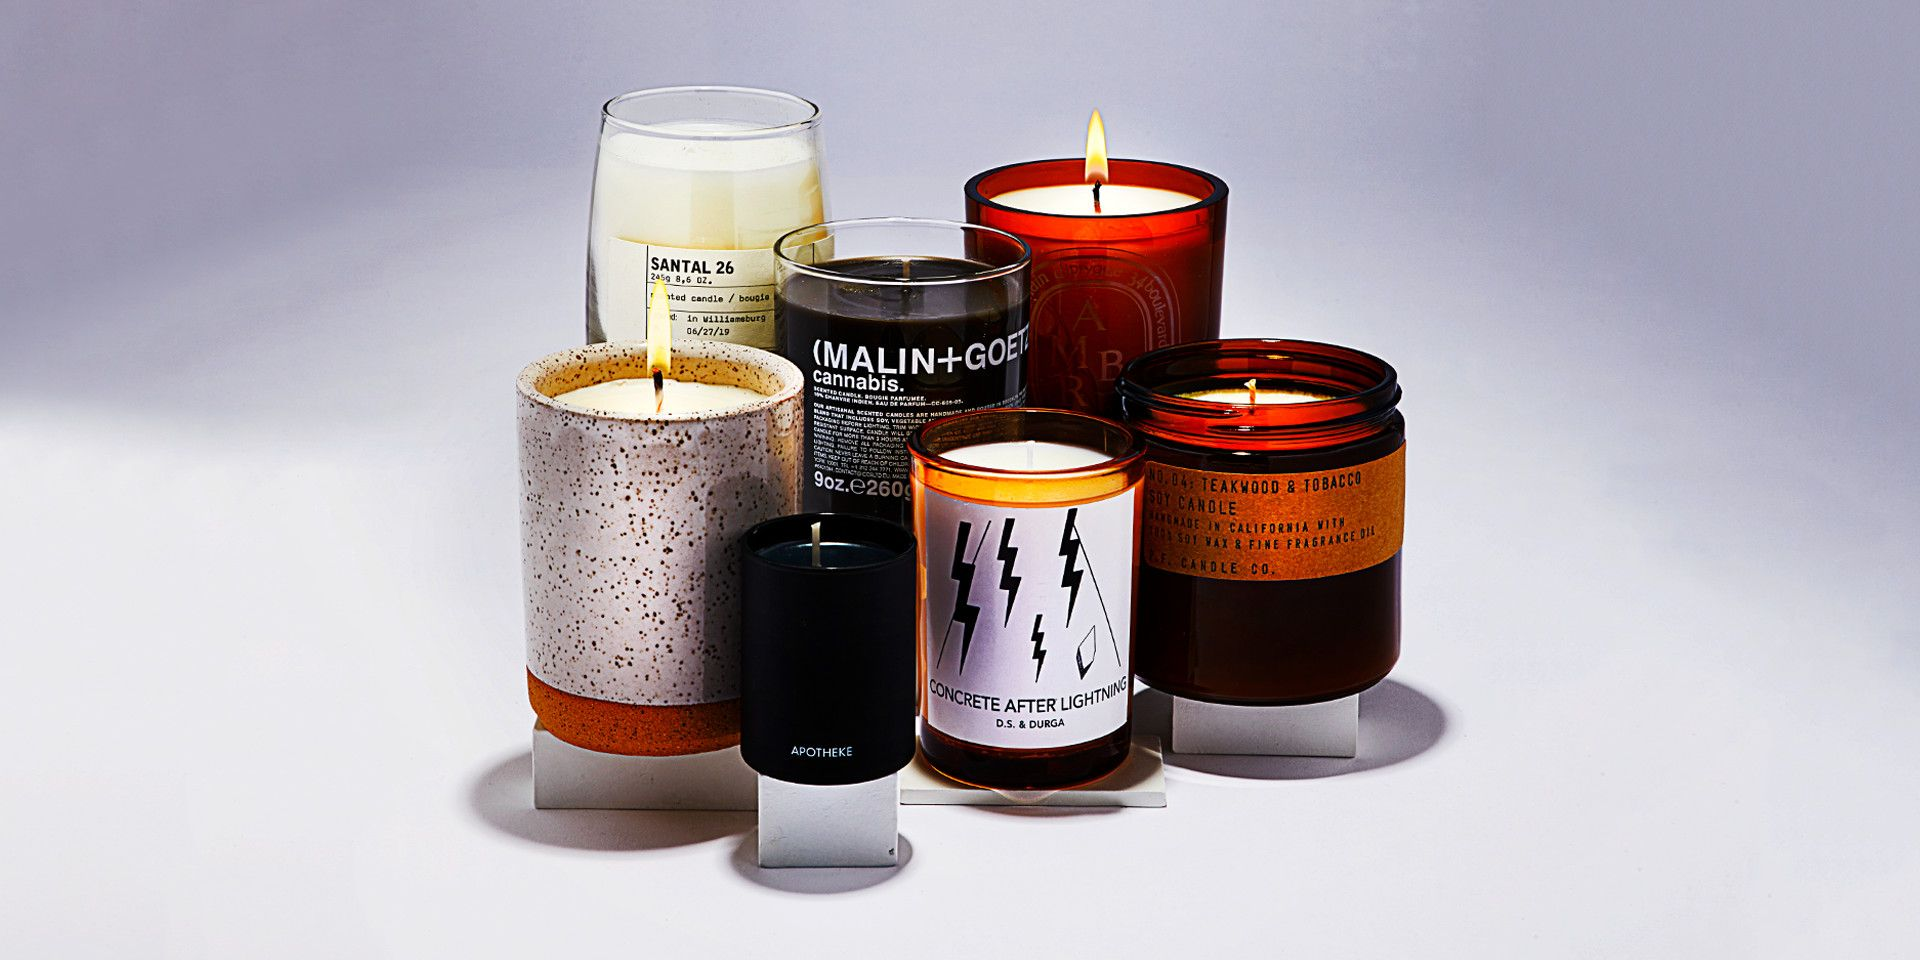 10 Best Candles For Fall 2020 Top Smelling Candle Brands To Buy